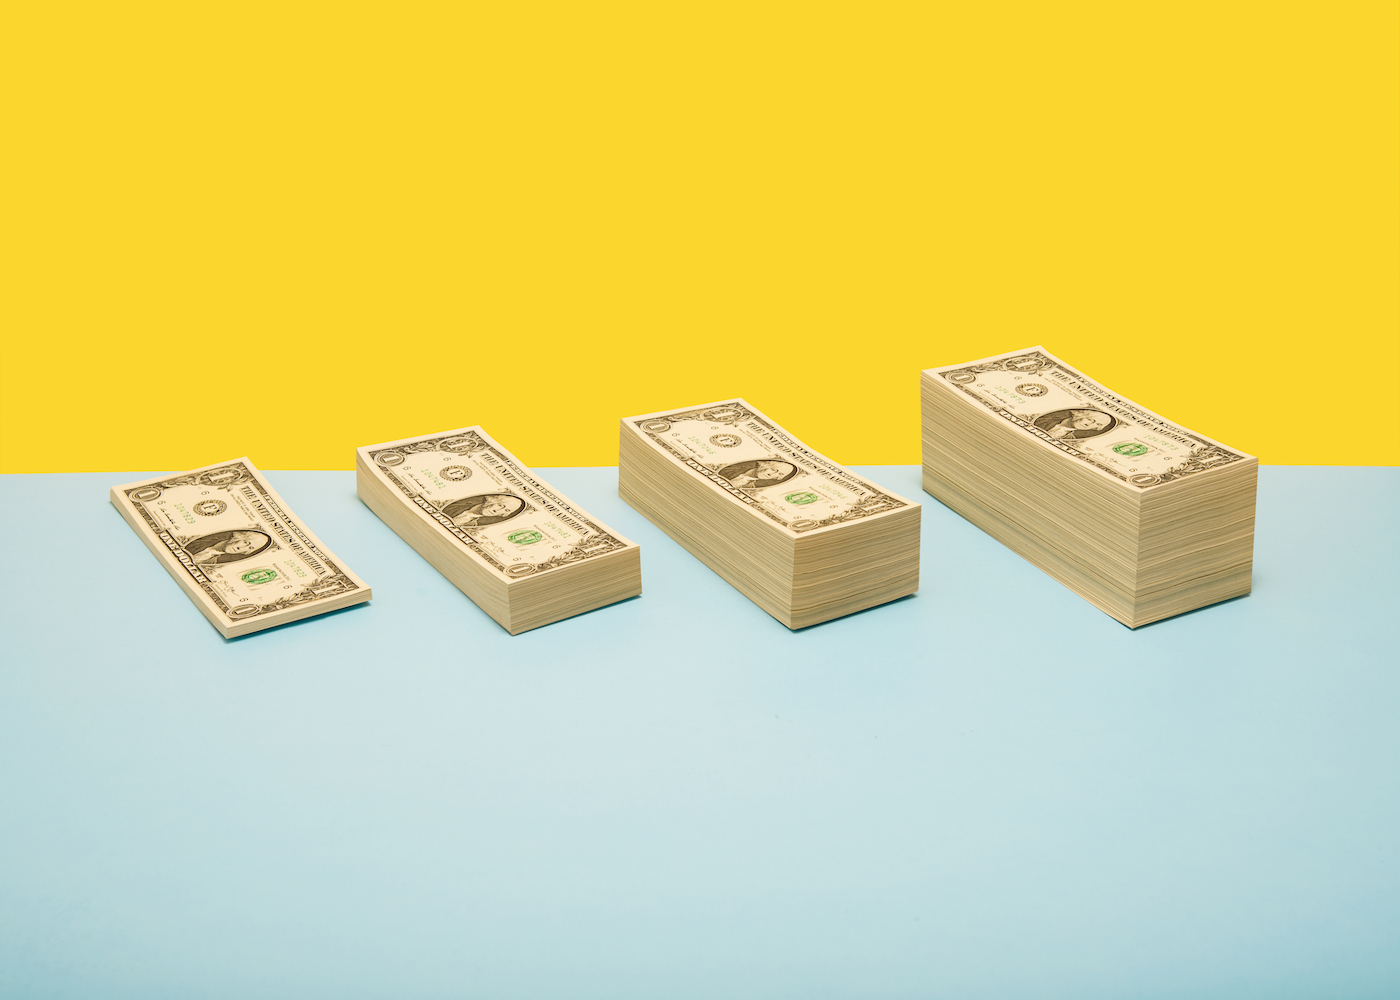 11 Money Etiquette Tips to Master in the New Year